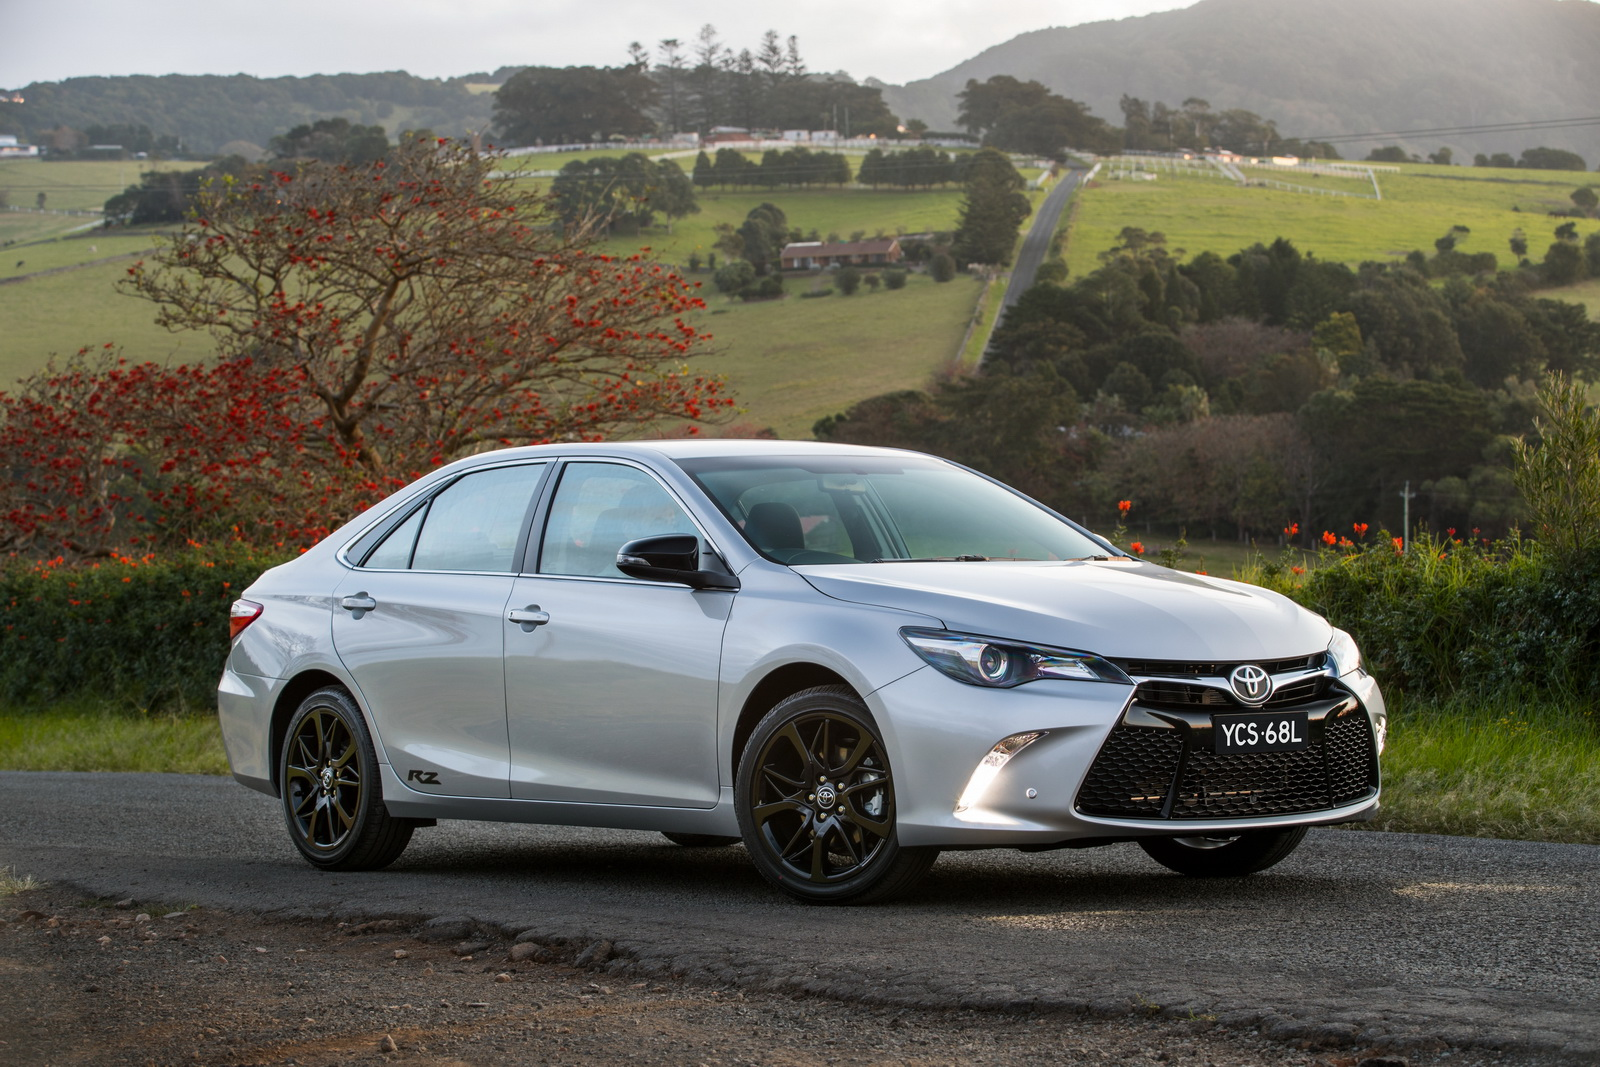 hight resolution of toyota camry 2 4 twin cam engine diagram wiring library rz special joins toyota camry s australian